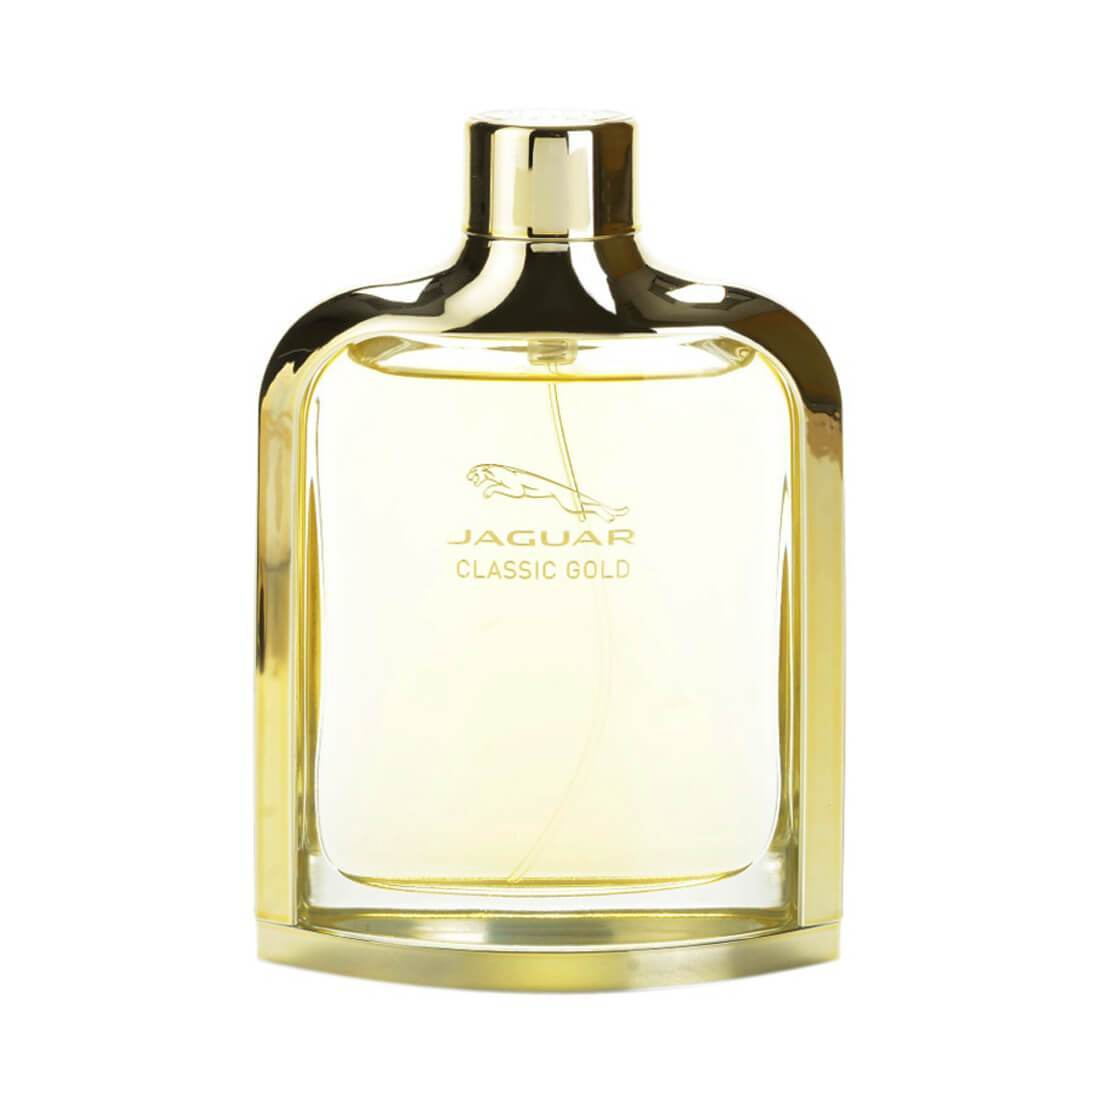 Jaguar Classic Gold EDT Perfume For Men - 100ml